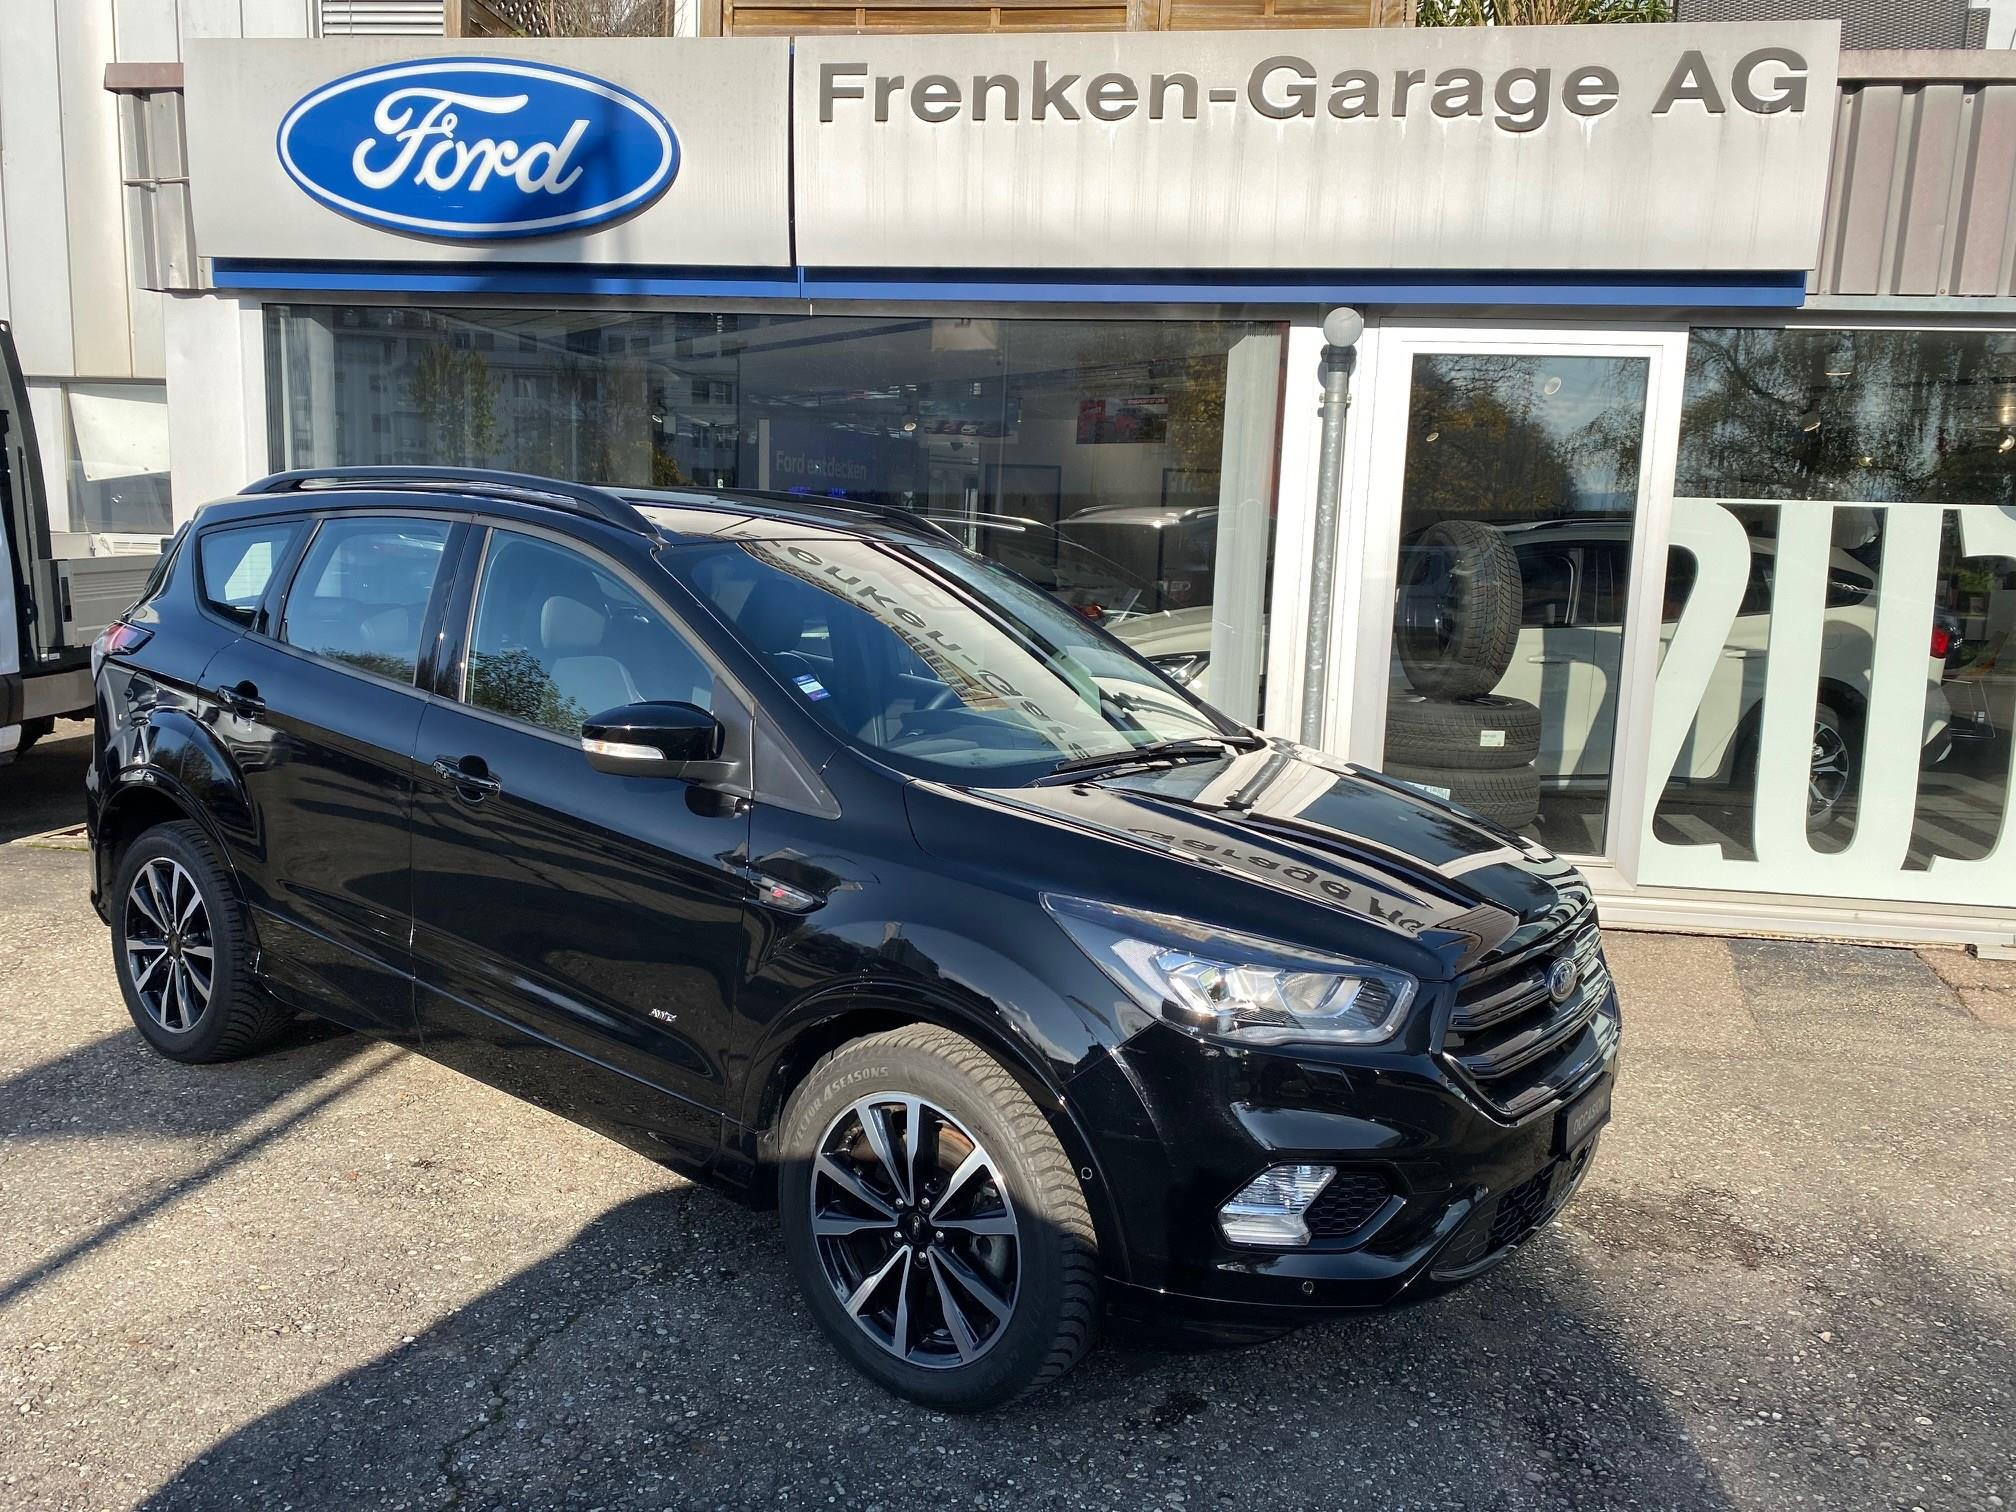 2019 FORD KUGA Kuga 2.0 TDCi ST Line High 4WD PowerShift